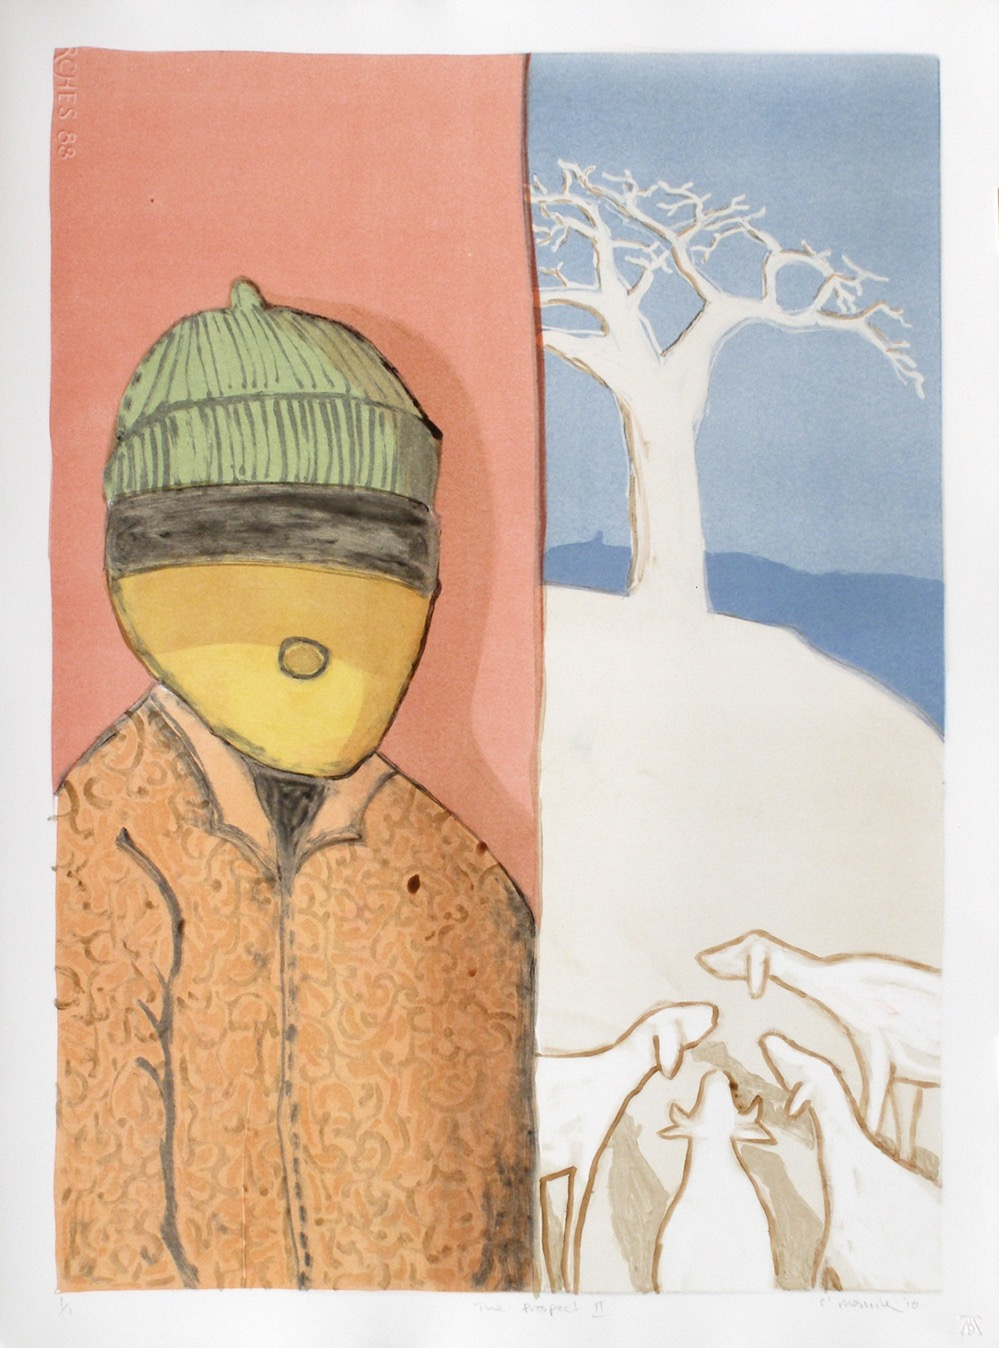 Format split into two sections. On left man wearing a woolly hat on right sheep in landscape with tree on skyline.